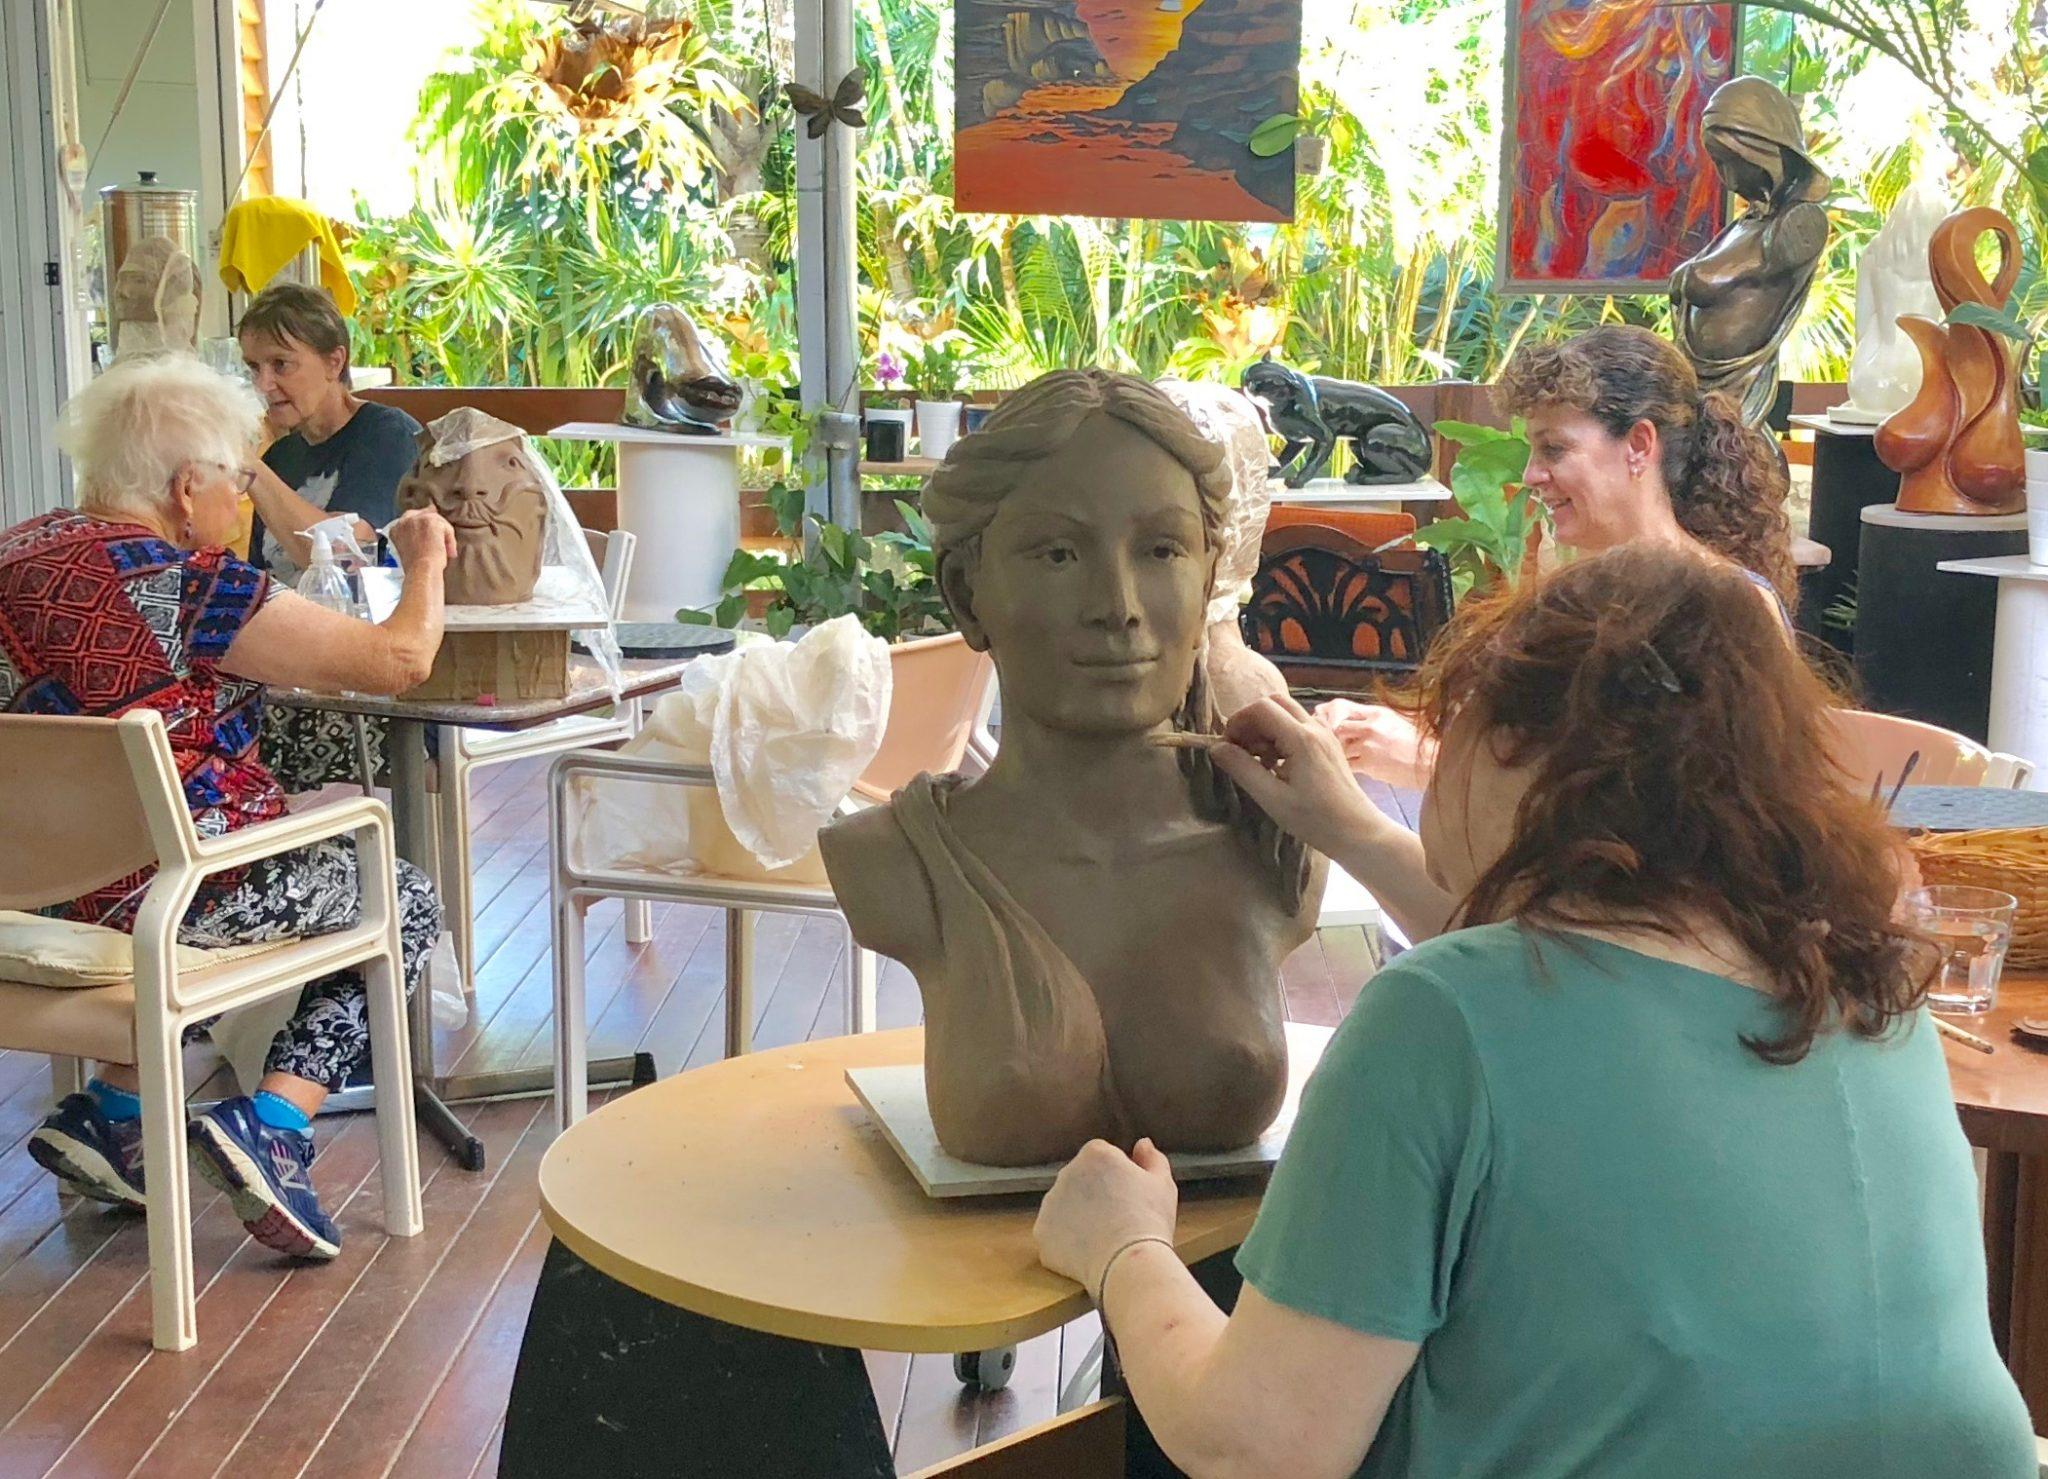 Paulina is now detailing her sculpture before it gets fired.